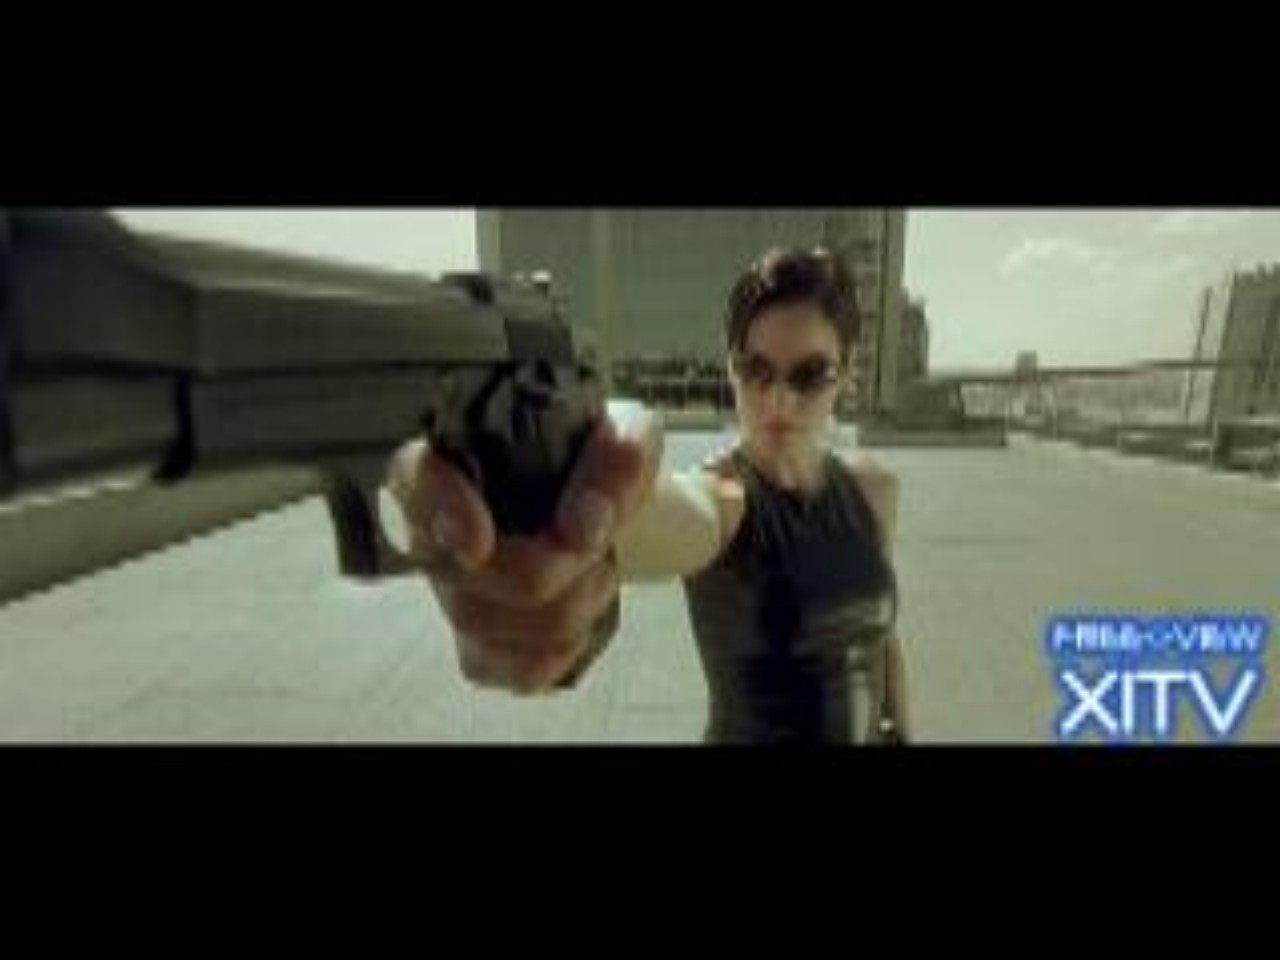 Watch Now! XITV FREE <> VIEW™ THE MATRIX! XITV Is Must See TV!